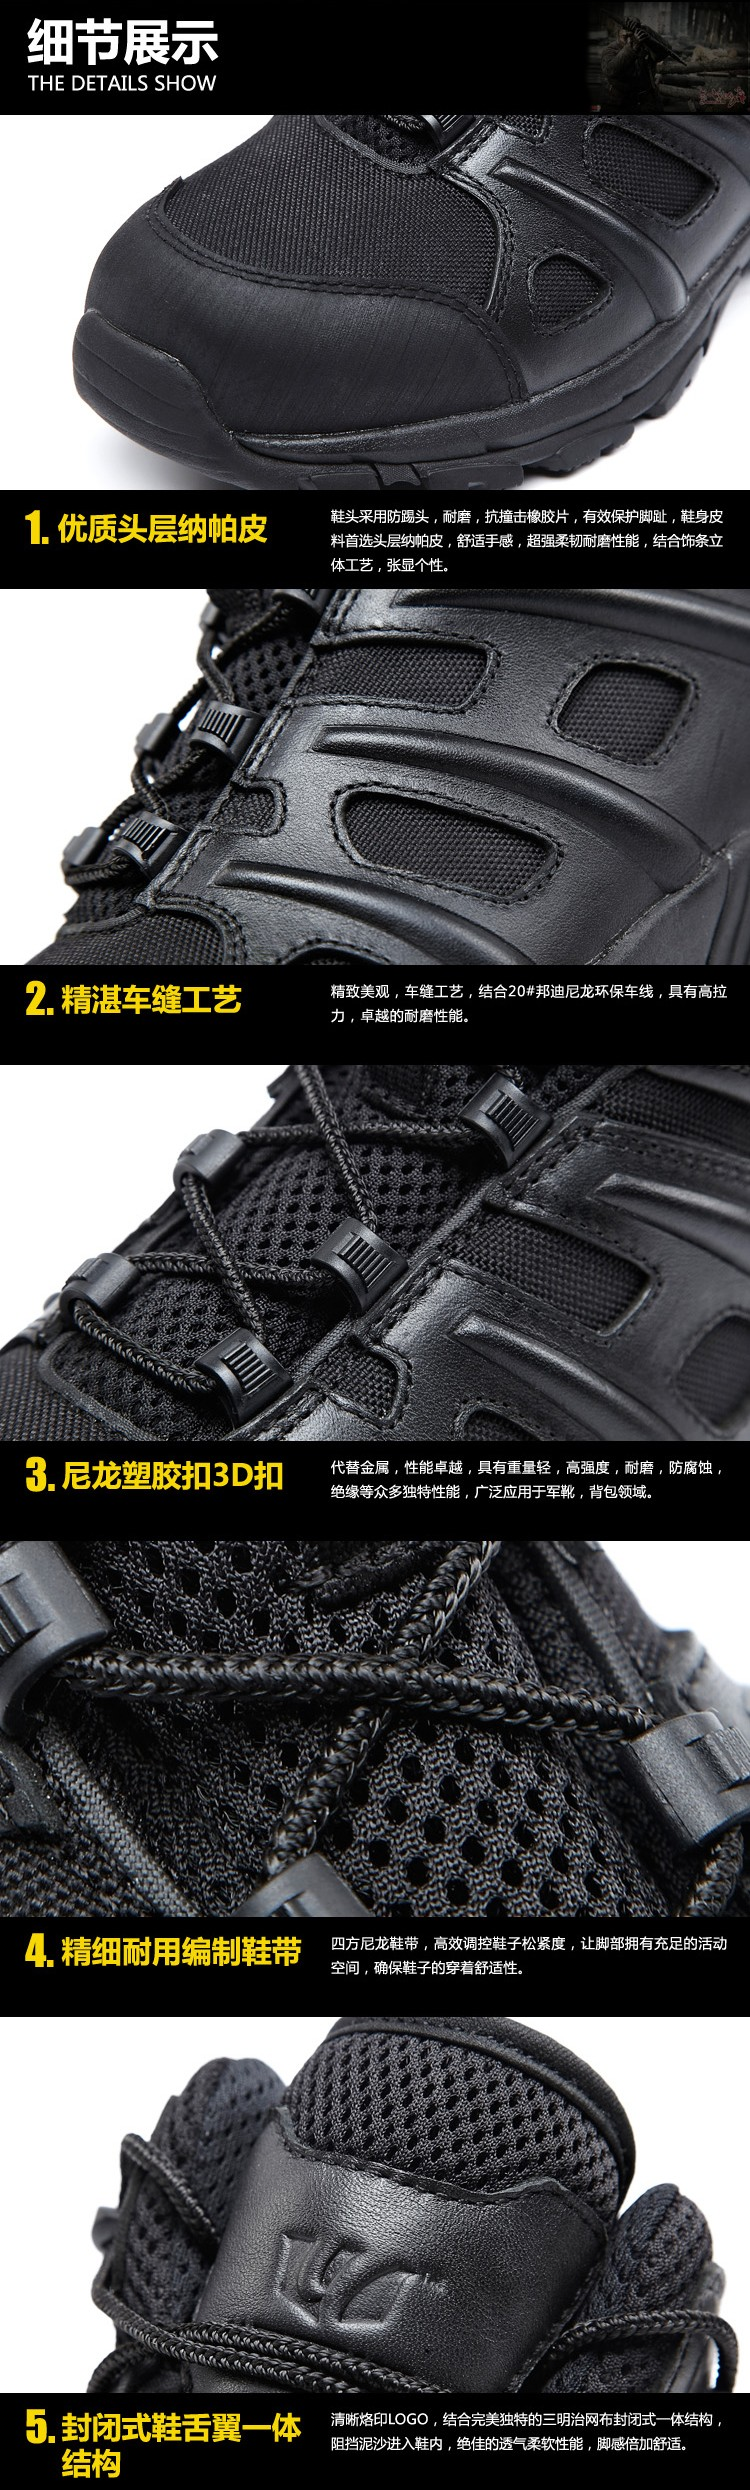 Loveslf factory wholesale outdoor cst safety boots anti-puncture properties